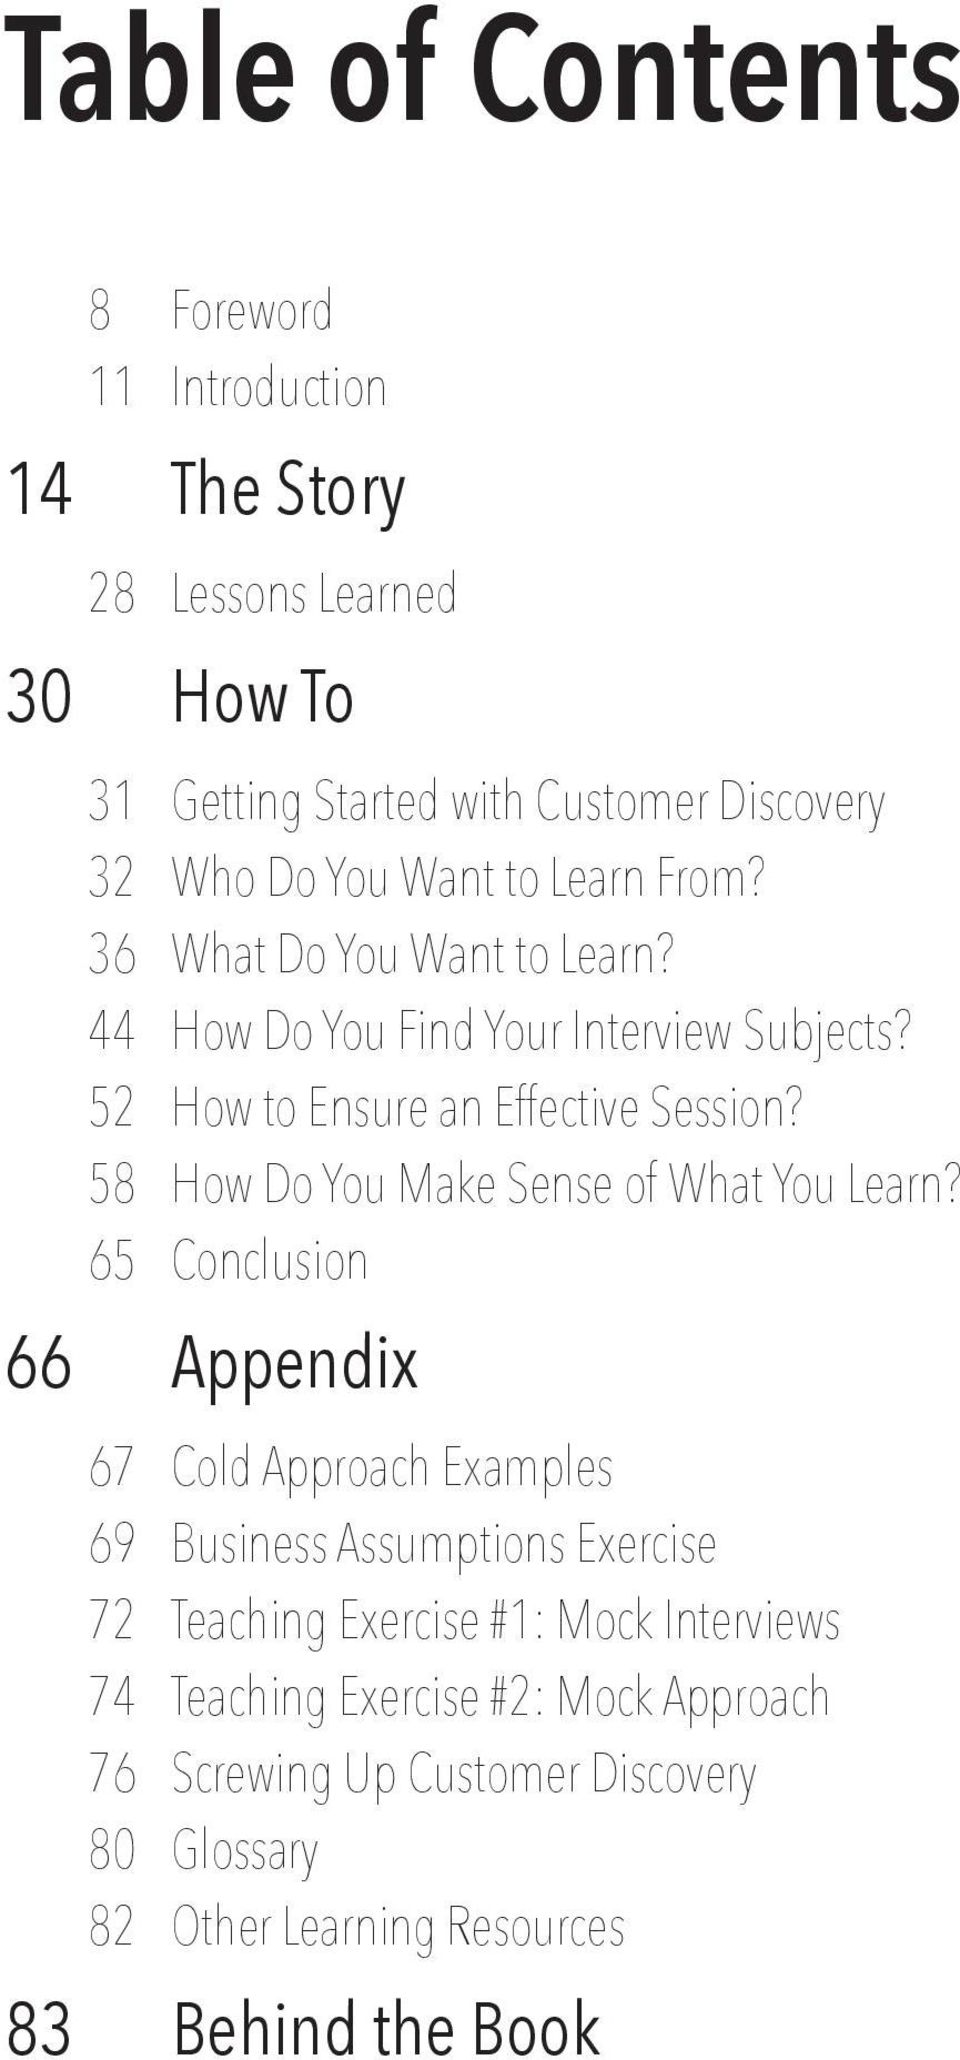 58 How Do You Make Sense of What You Learn?